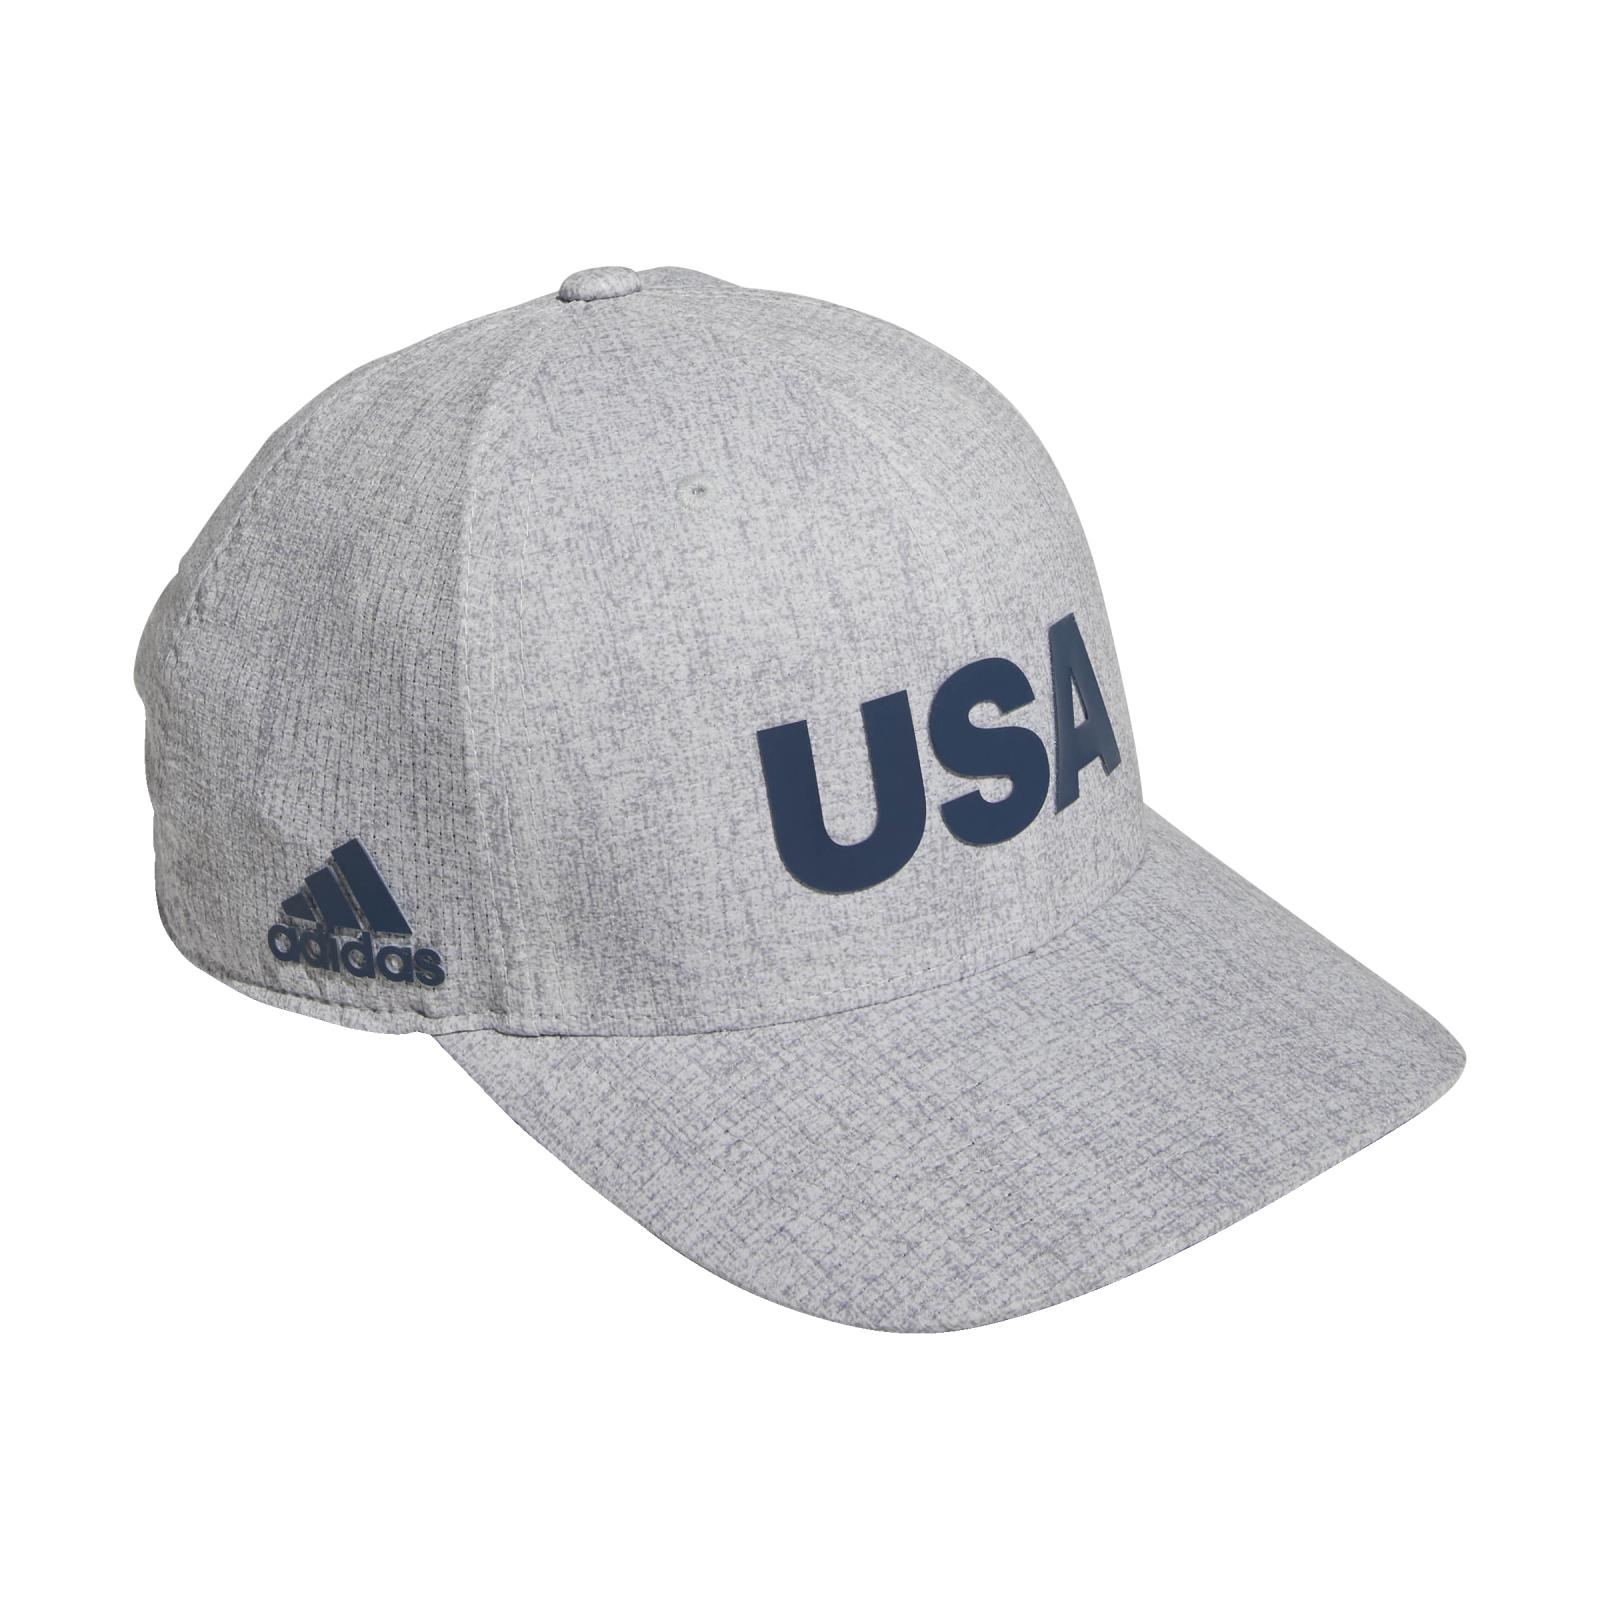 edc6139024cc The USA GOLF Collection is available now on adidas.com and at select  retailers nationwide.